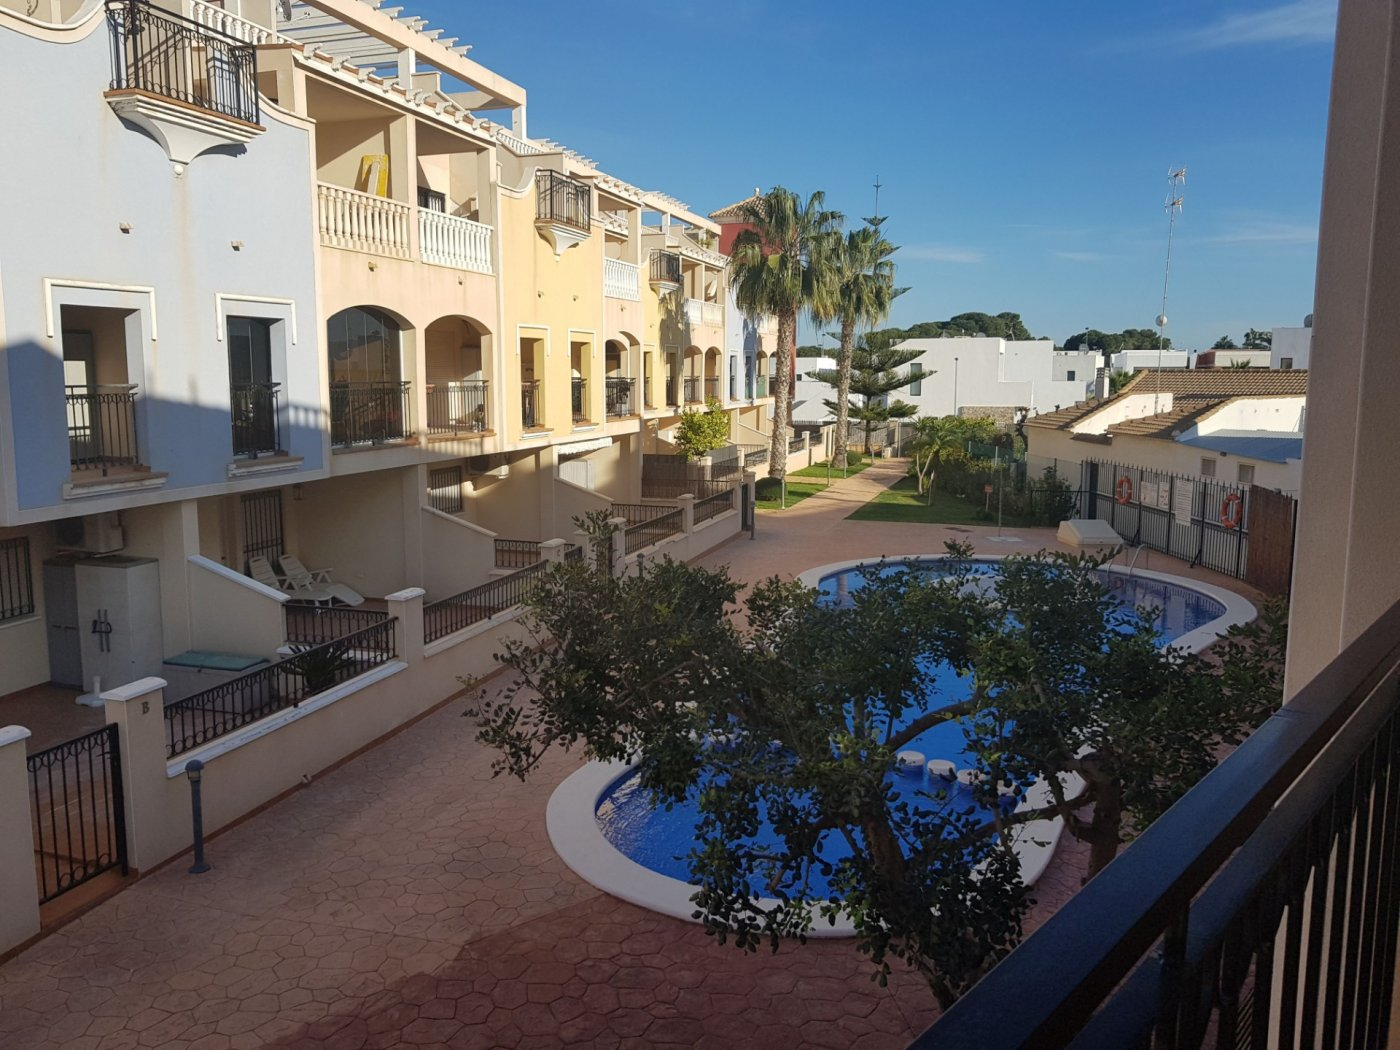 Gallery Image 28 of Fantastic corner apartment on walking distance of beach and shopping centre